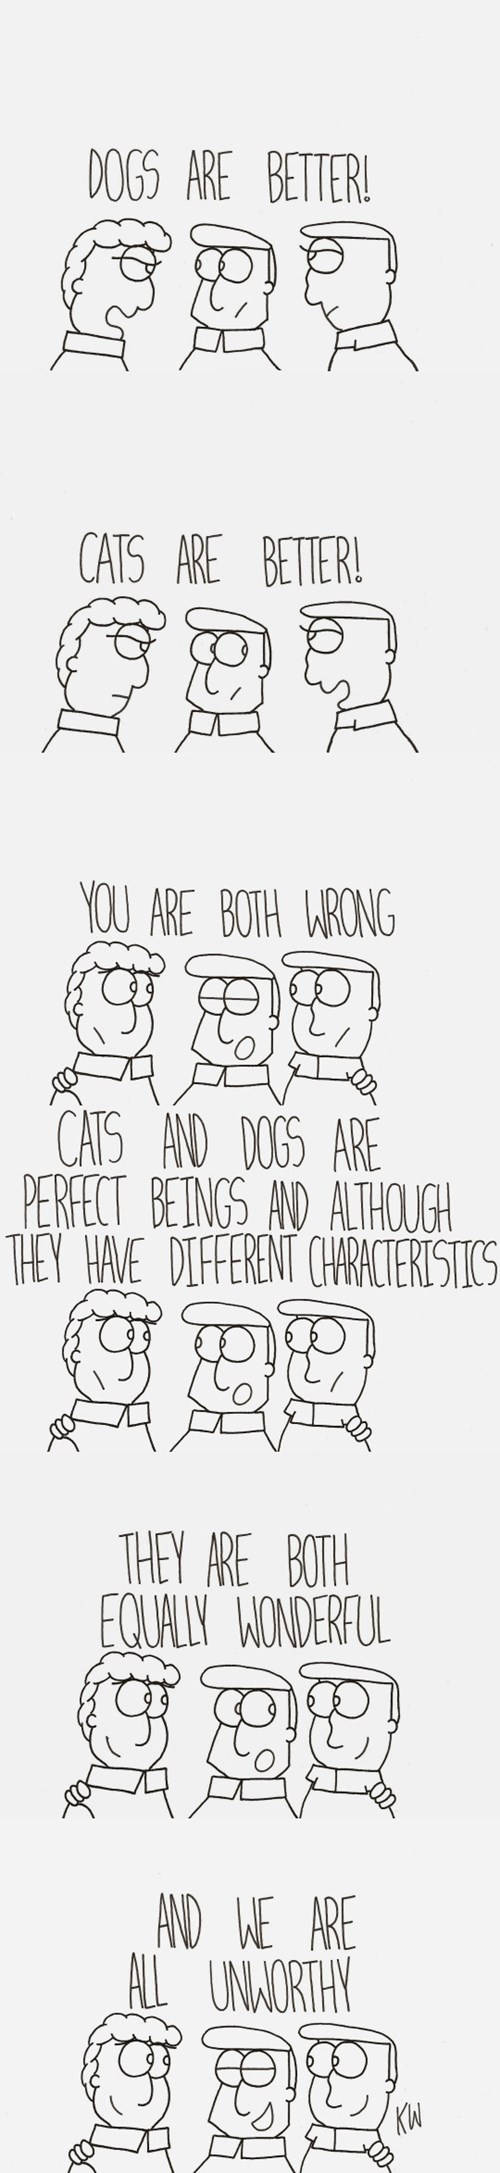 funny-web-comics-the-definitive-answer-on-whether-cats-or-dogs-are-better